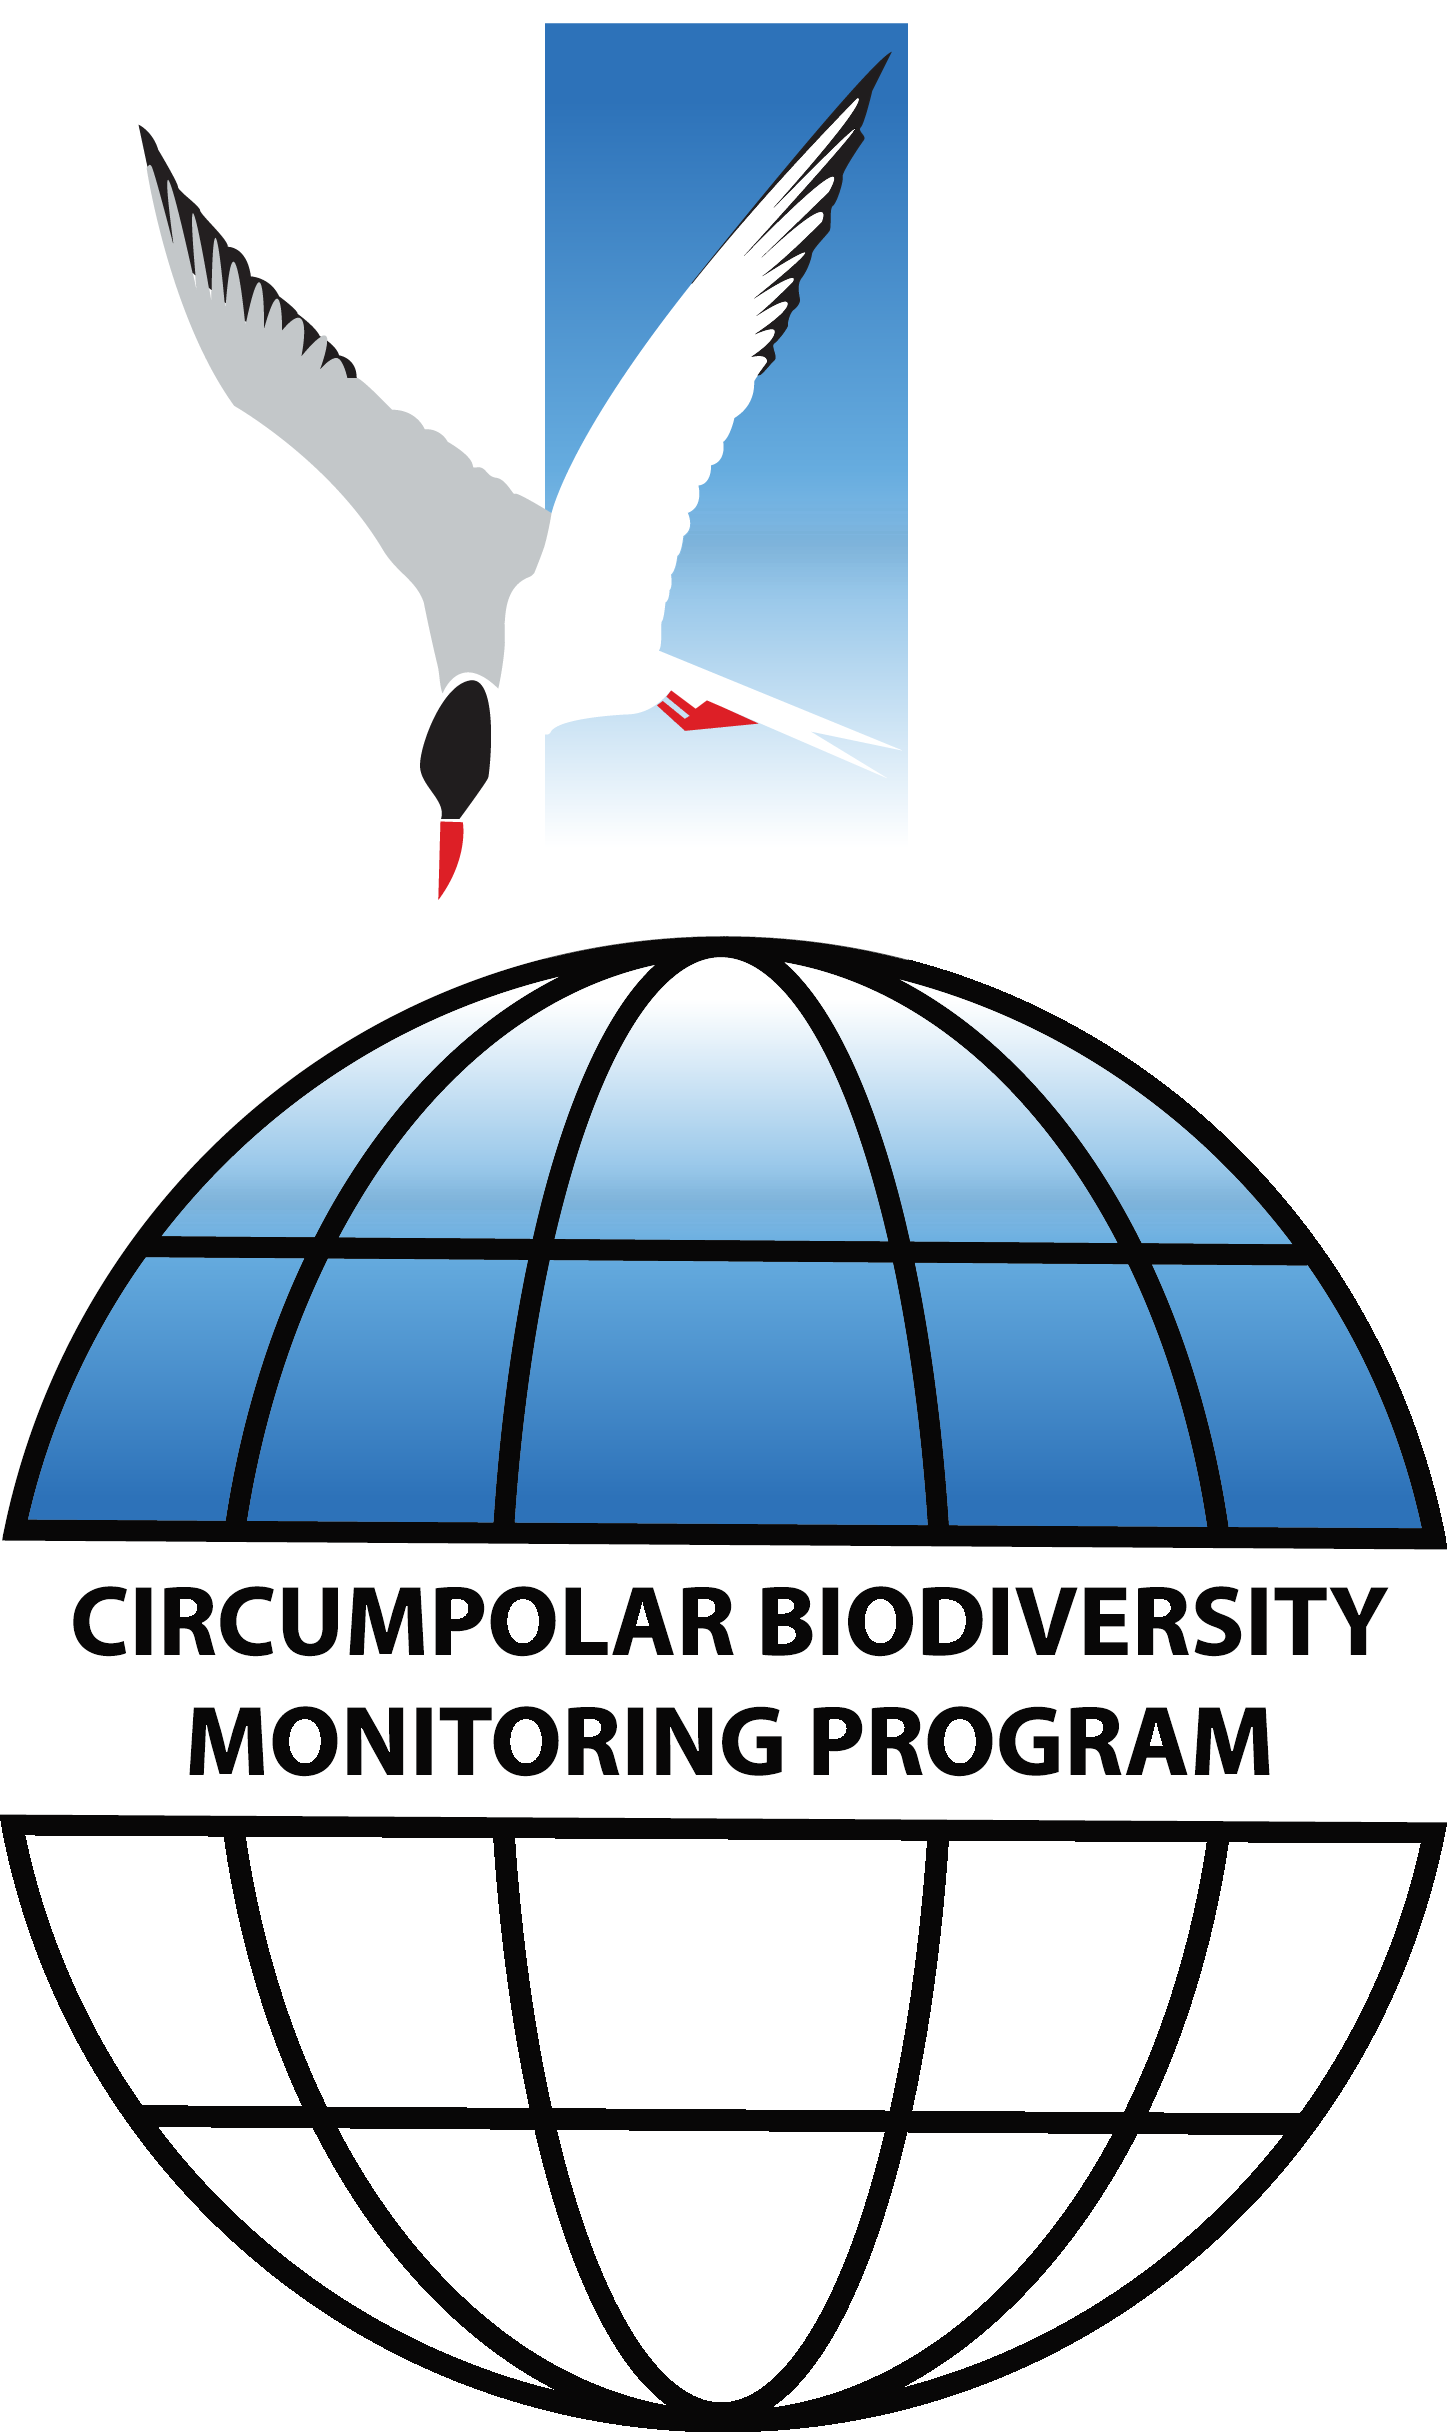 logo for Circumpolar Biodiversity Monitoring Program